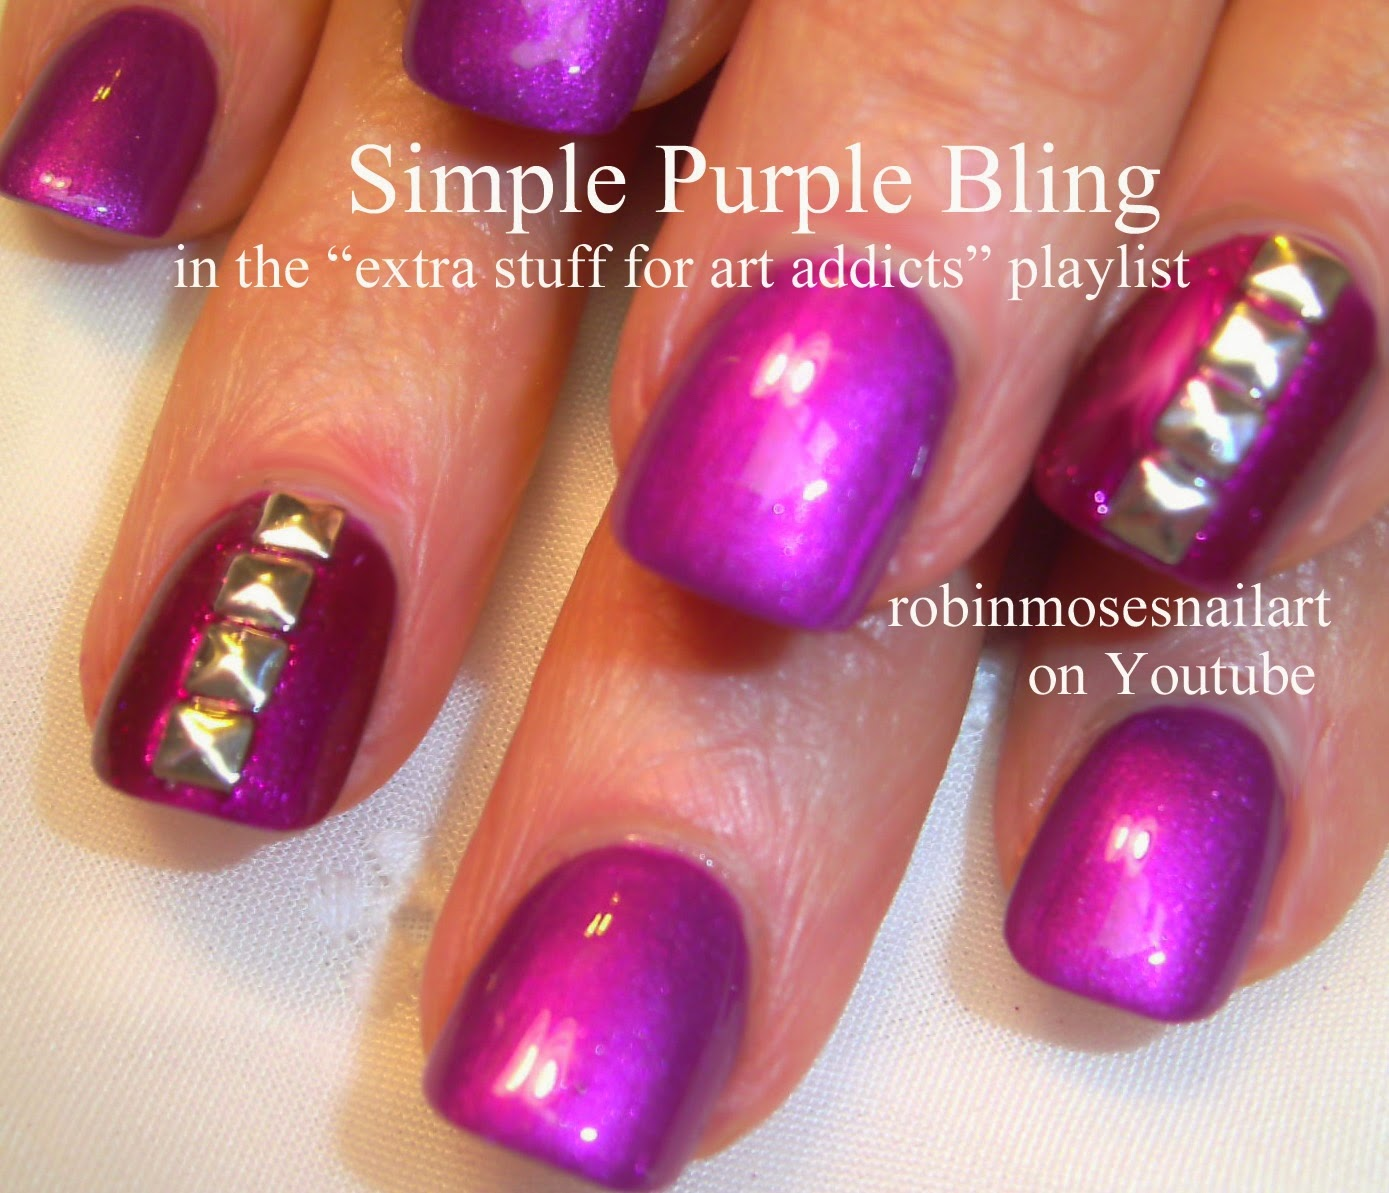 Easy nail designs for beginners without tools beginner nail art on pinterest beginner nail designs easy nail designs for beginners without tools prinsesfo Images